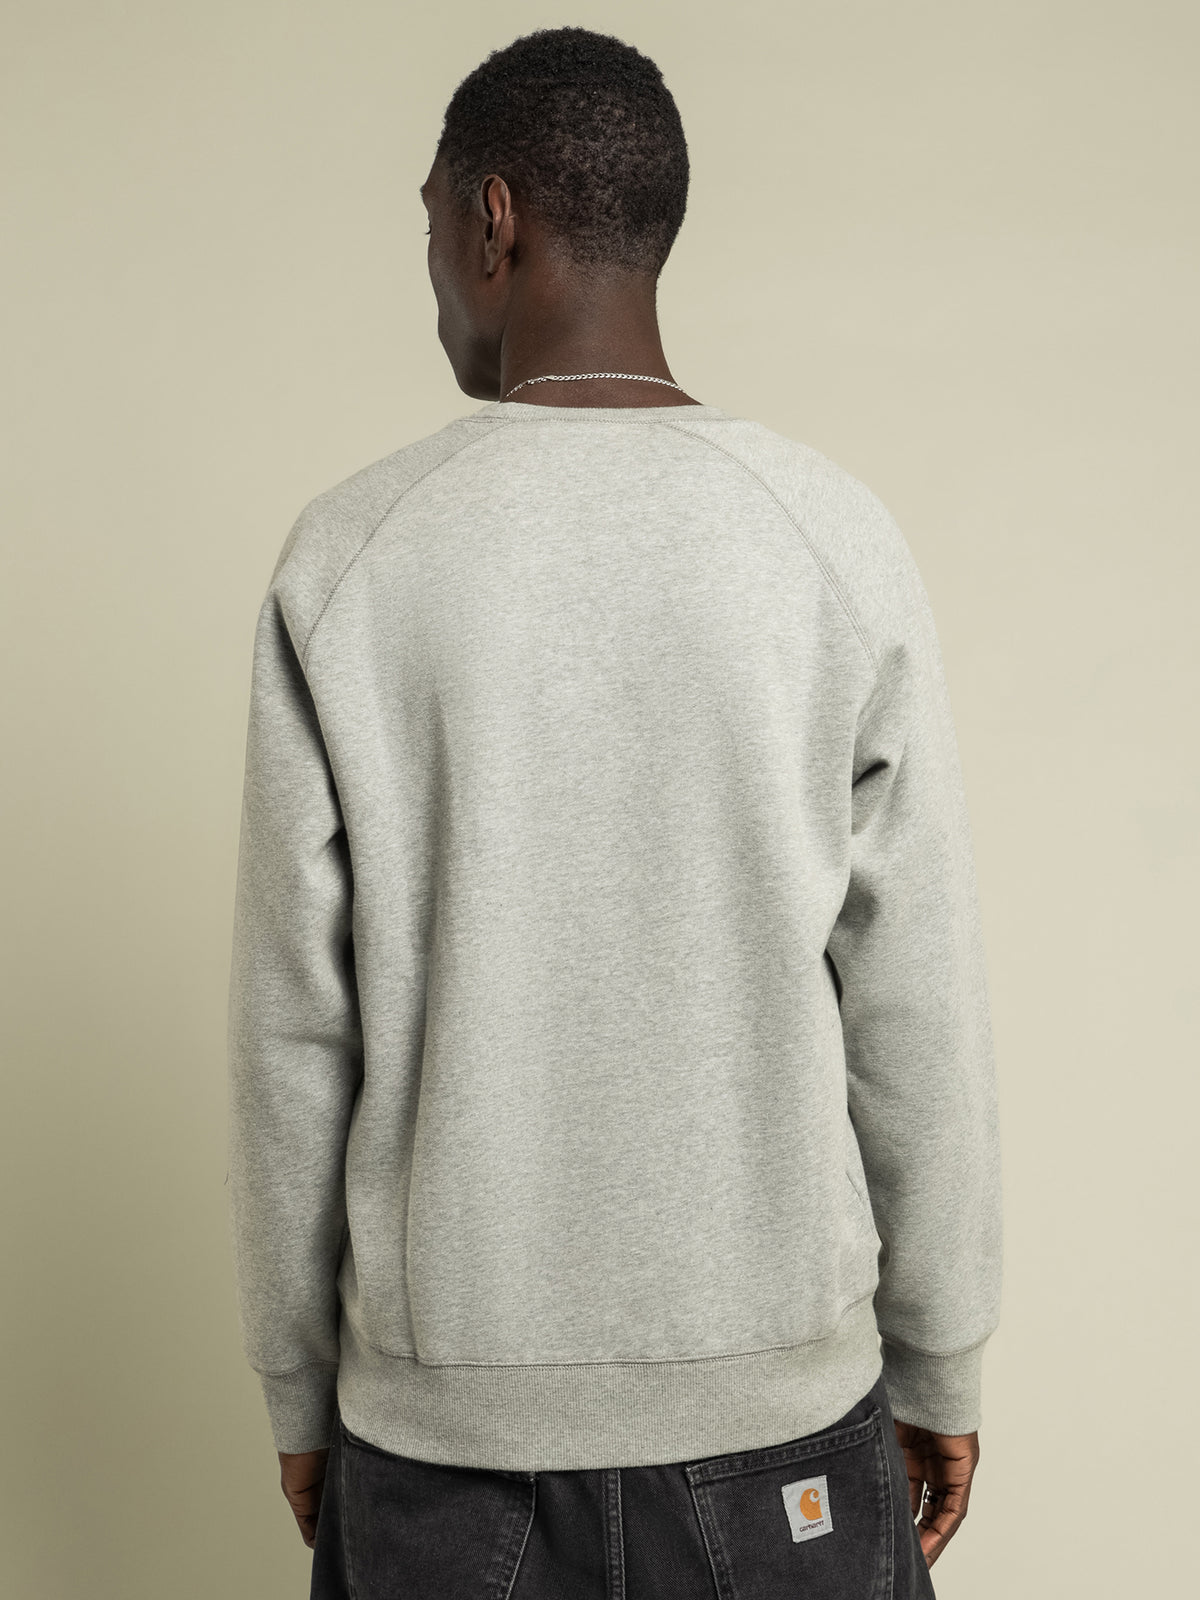 Chase Sweatshirt in Grey